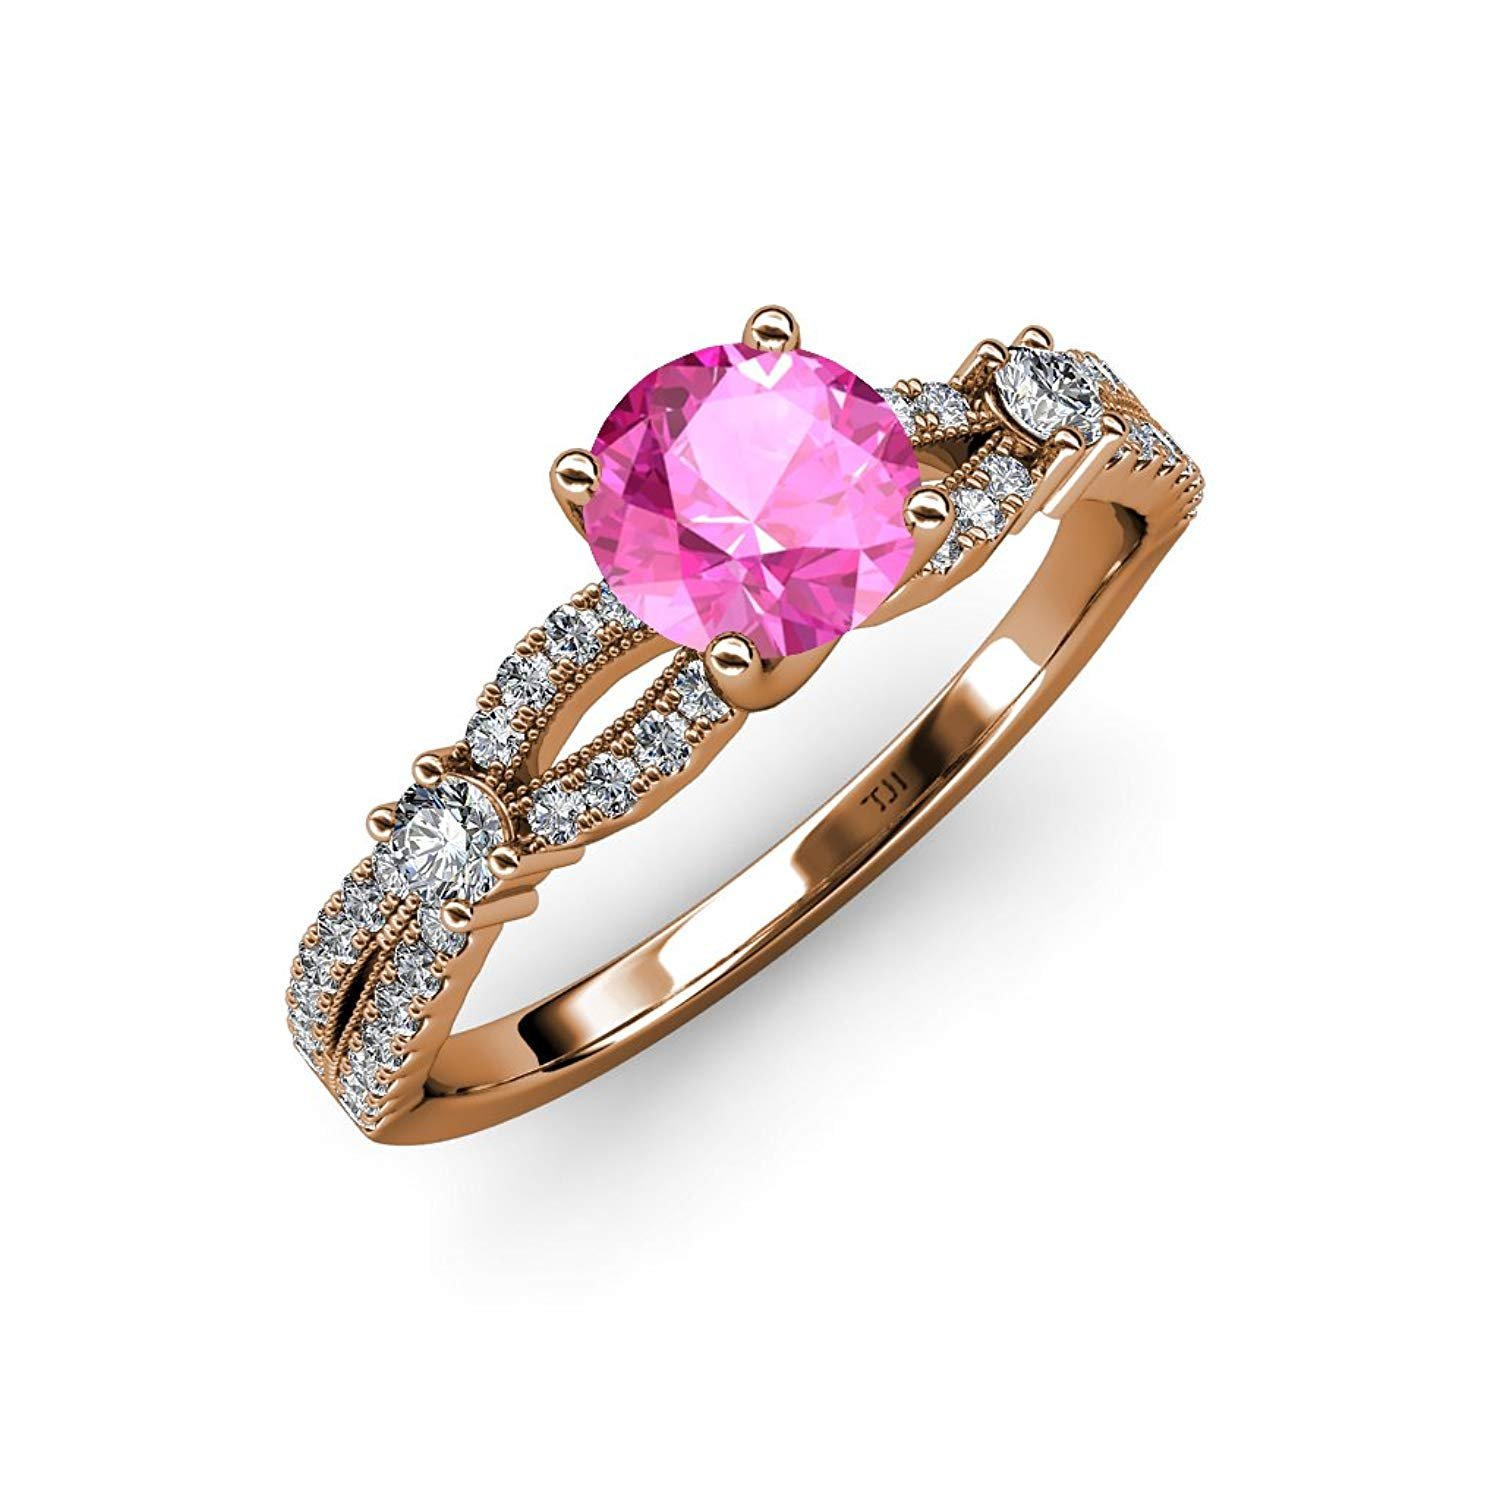 Pink Sapphire and Diamond Split Shank Engagement Ring 1.40 ct tw in 14K Rose Gold.size 6.5 by TriJewels